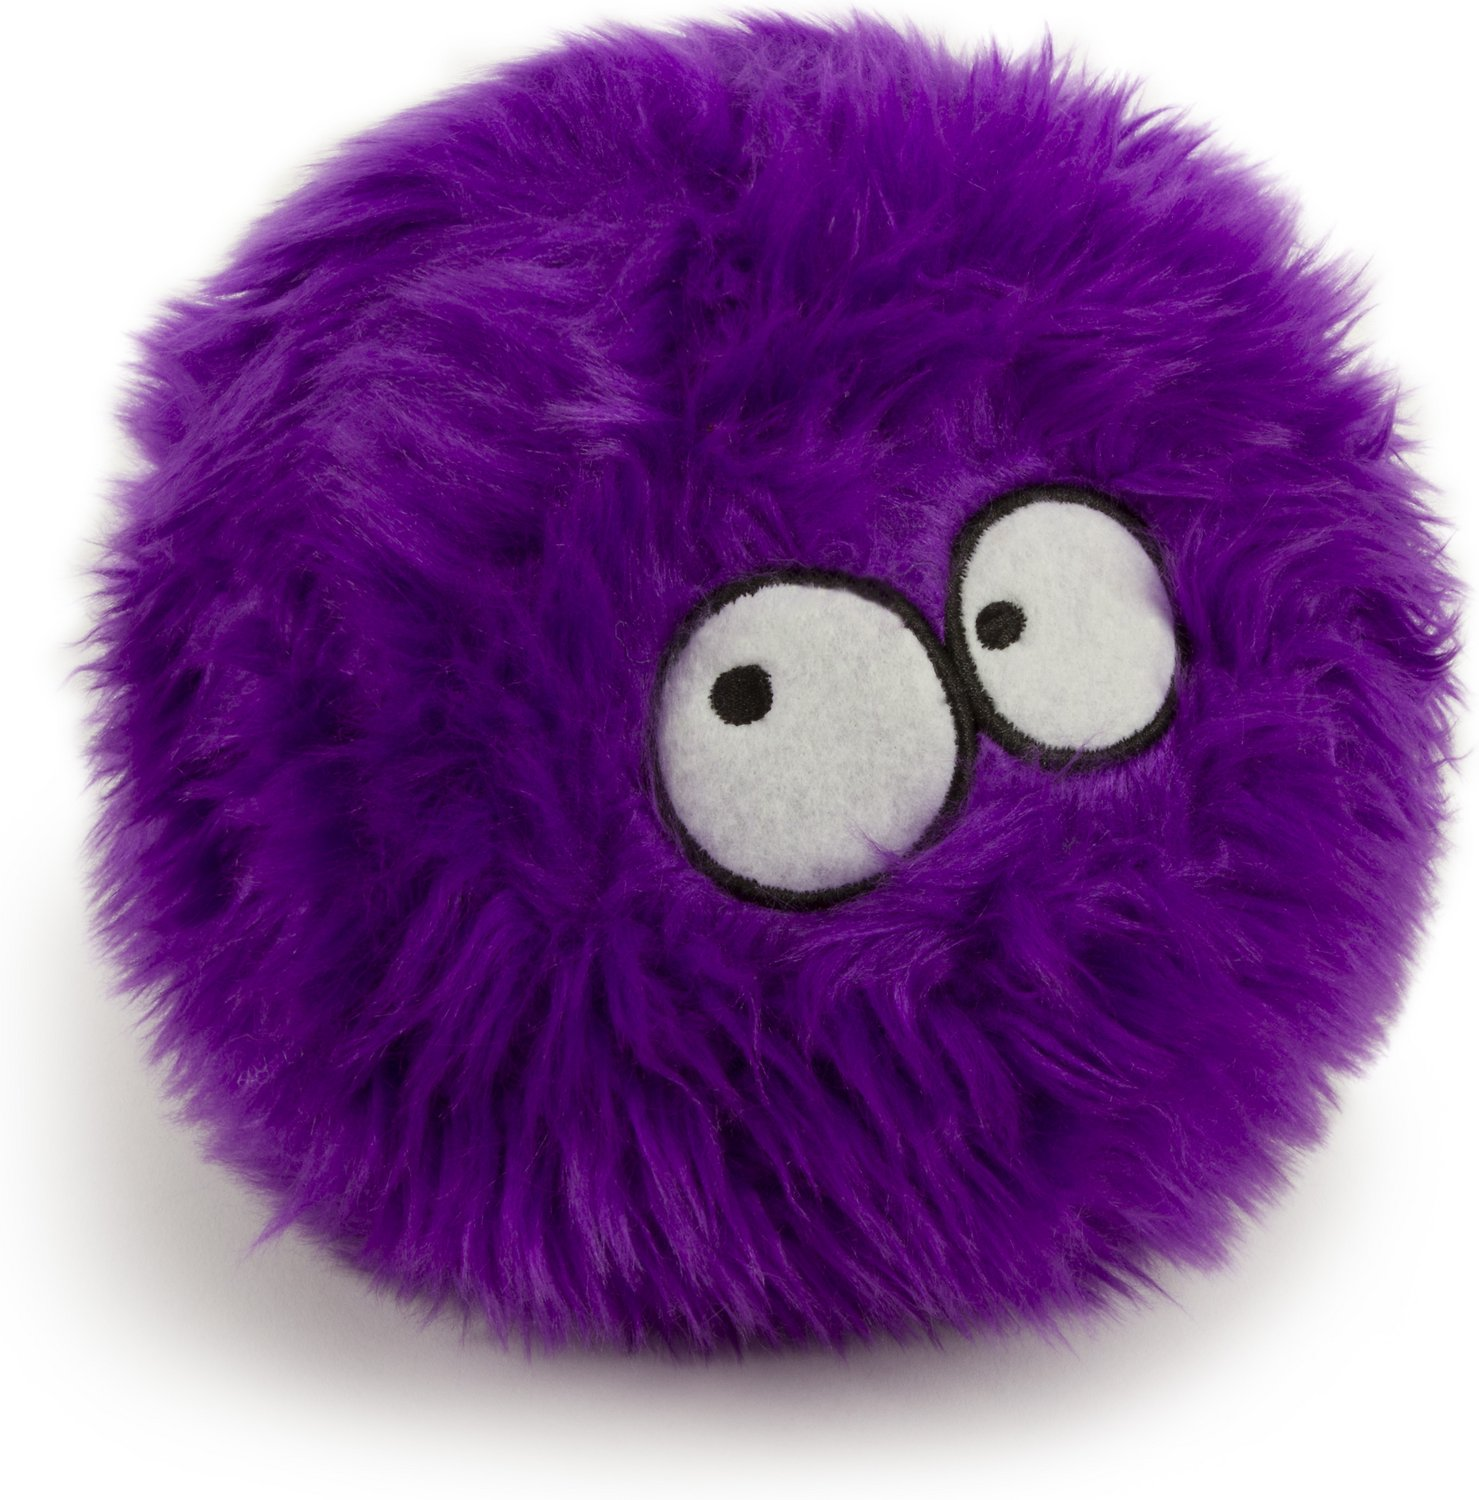 GoDog Furballz Chew Guard Dog Toy, Purple Image